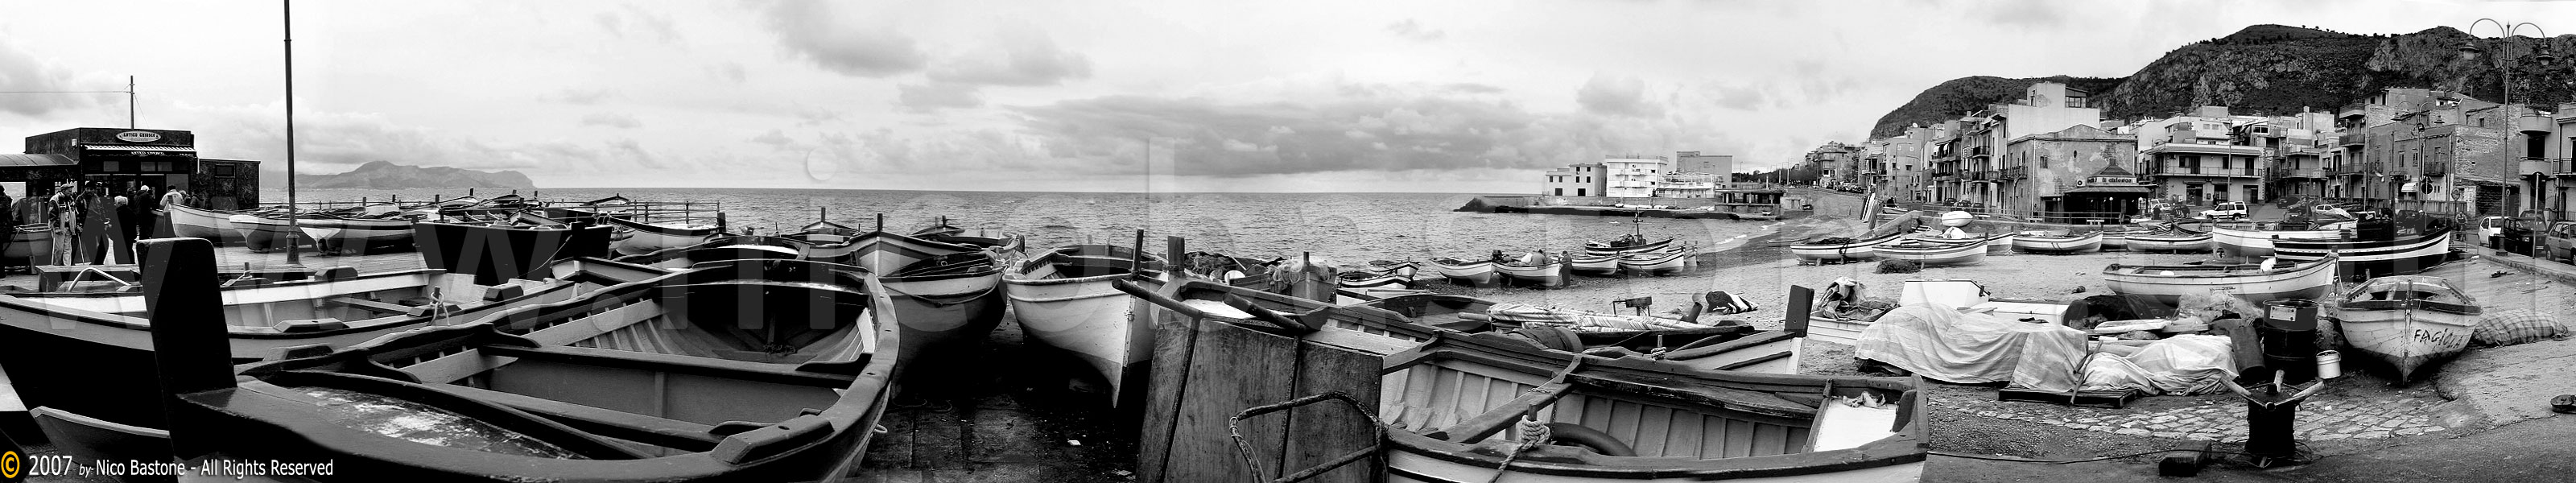 "Aspra, Bagheria PA ""Panorama con barche. Bianco e nero. - A large view with boats. Black & White"" Sicilia, Sicily, Sicile Foto, photos, fotos, immagini, images, pics"